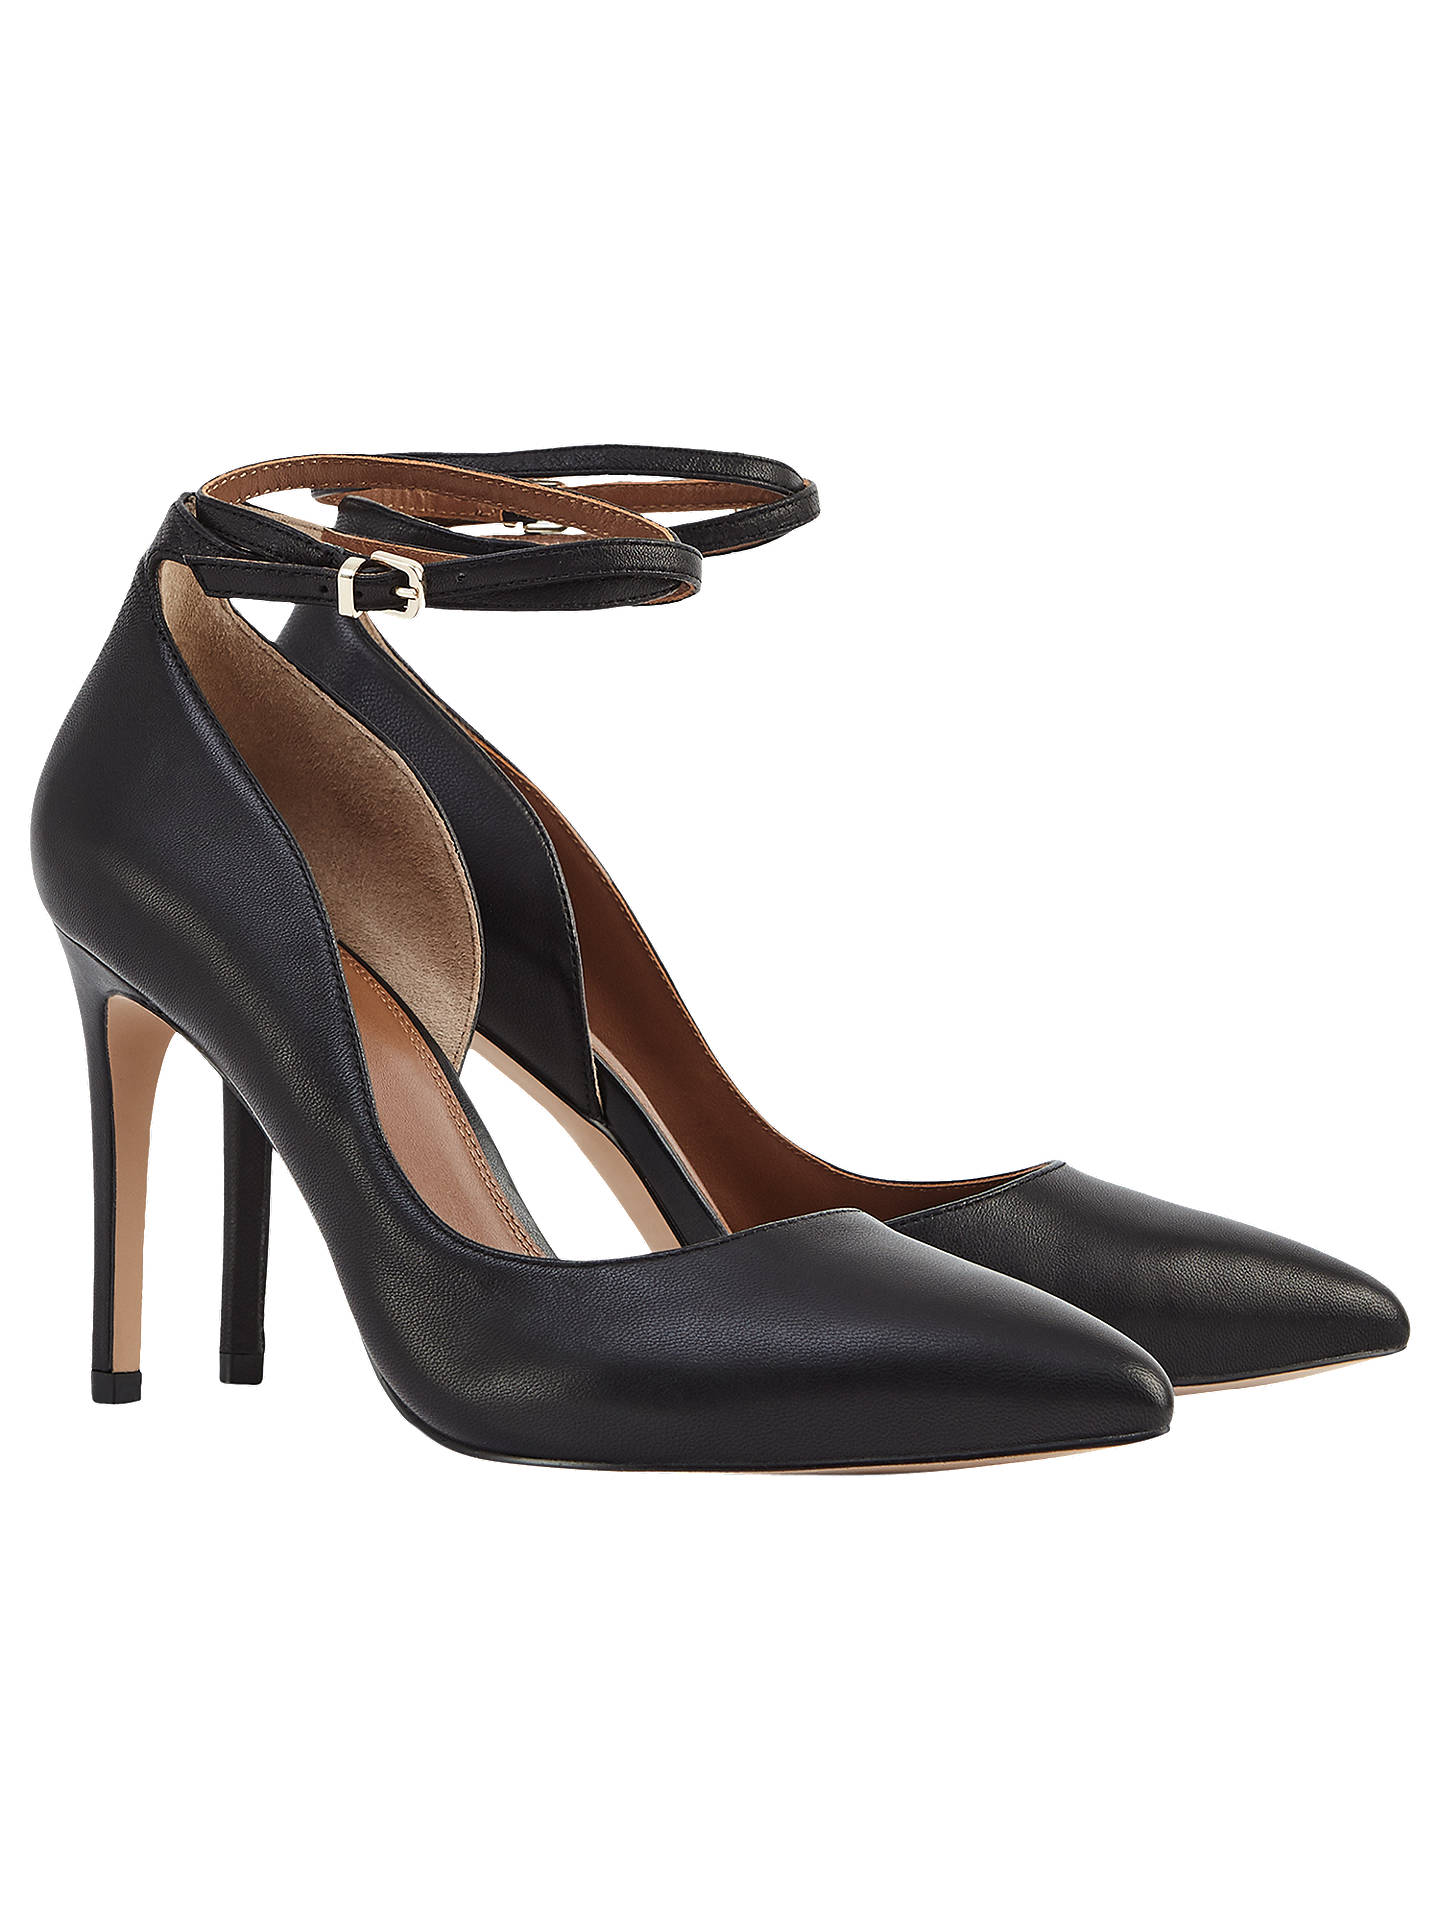 Buy Reiss Lya Leather Ankle Strap Shoes, Black, 3 Online at johnlewis.com